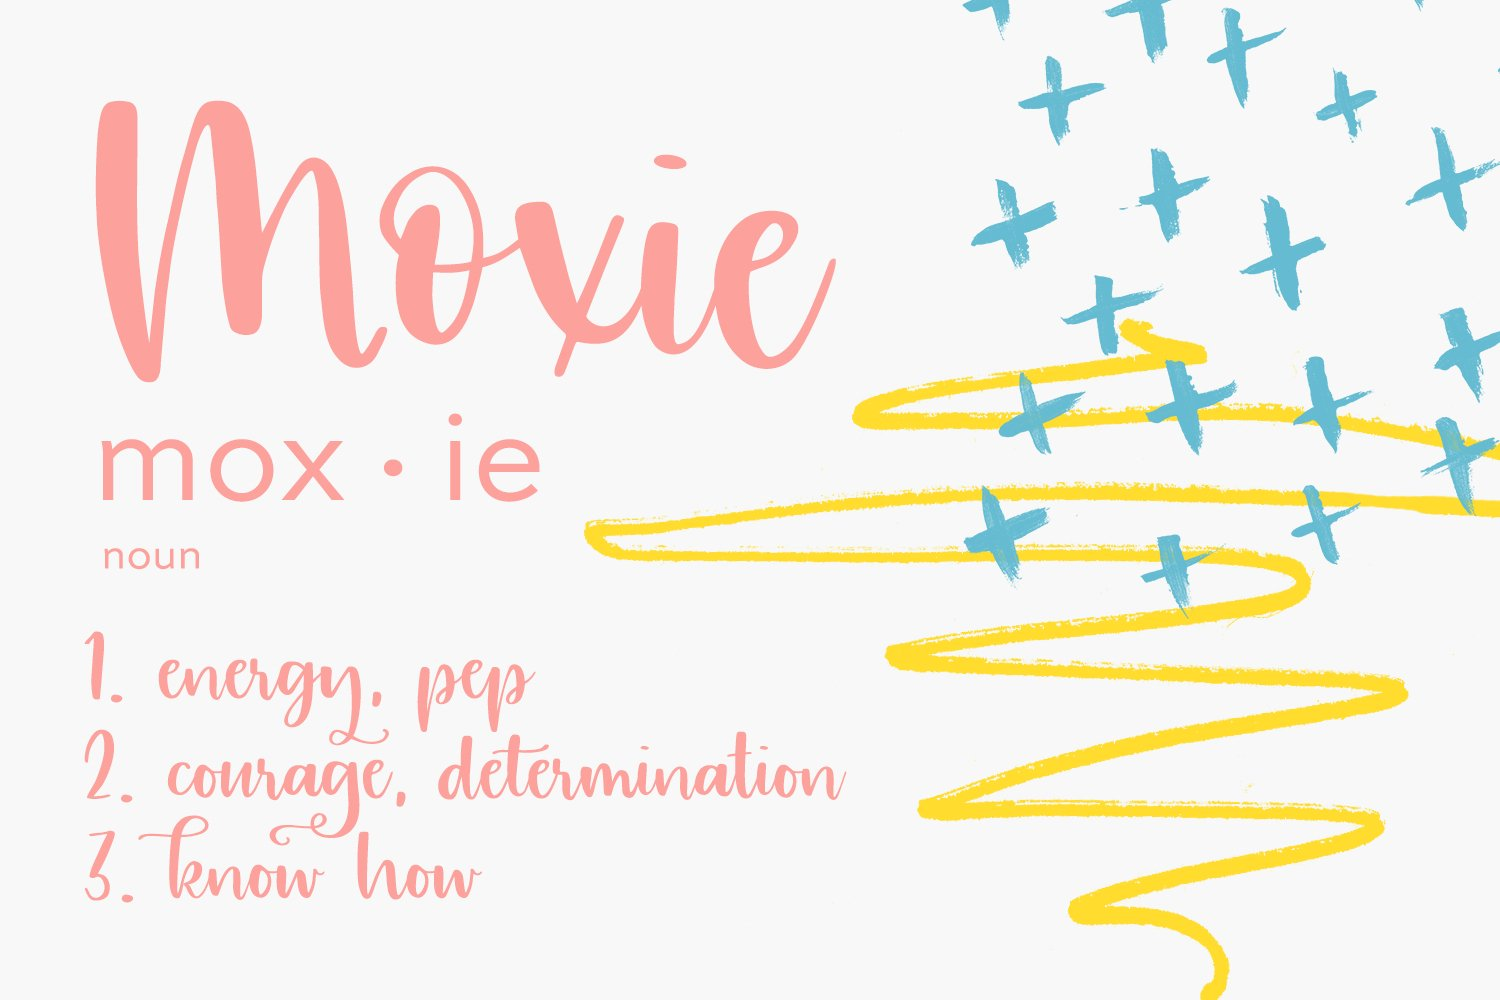 Moxie Modern Calligraphy Font example image 2